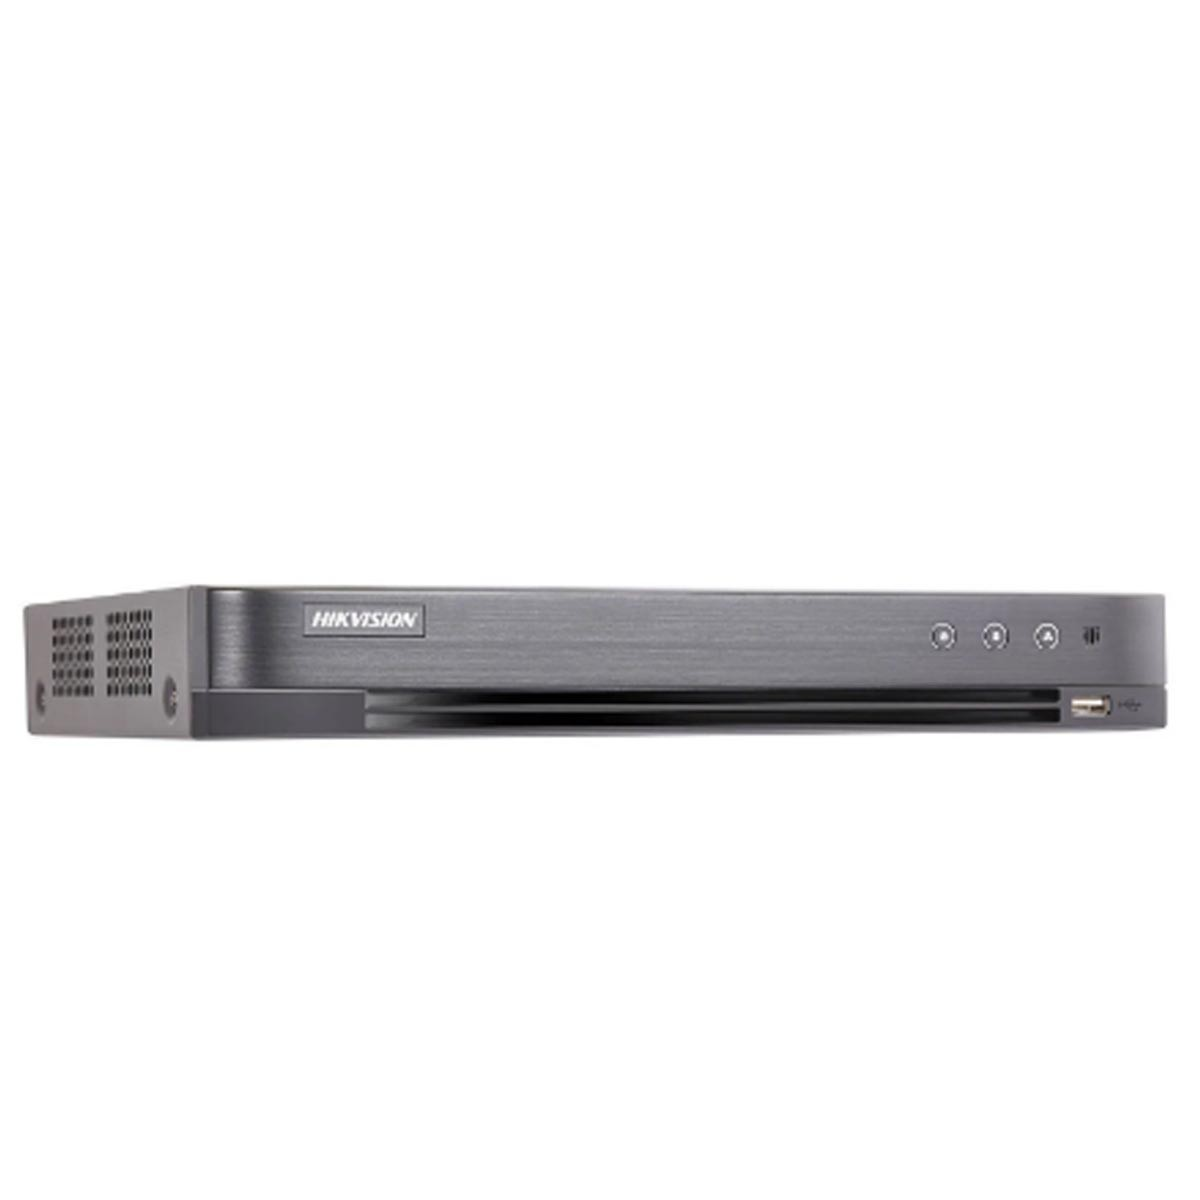 DVR STAND ALONE HIKVISION 8MP 08 CANAIS IDS-7208HUHI-M1/S